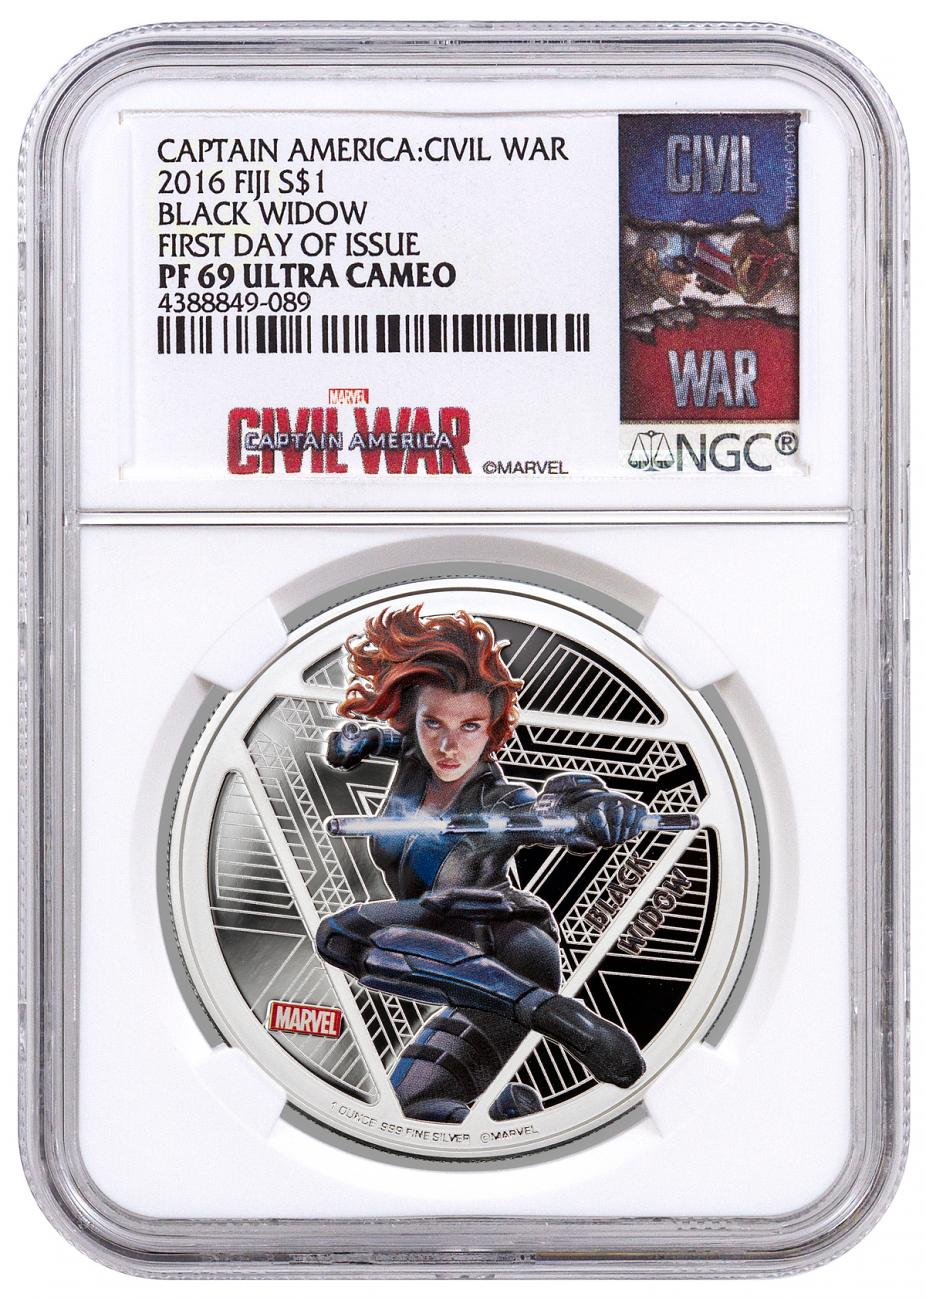 2016 Fiji $1 1 oz. Proof Silver Marvel Captain America: Civil War - Black Widow - NGC PF69 UC First Day of Issue